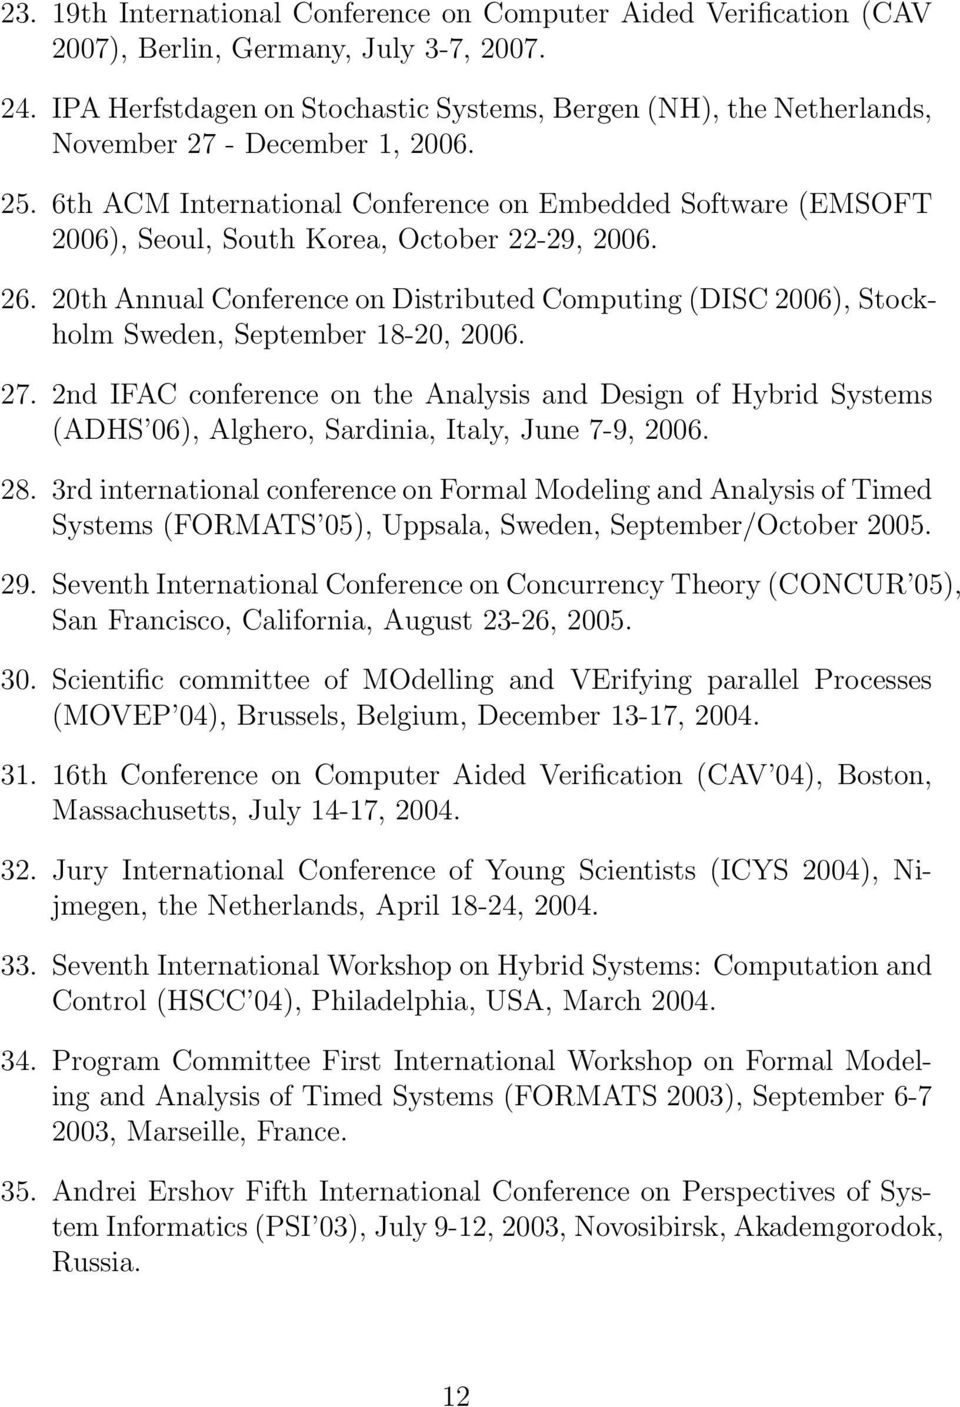 6th ACM International Conference on Embedded Software (EMSOFT 2006), Seoul, South Korea, October 22-29, 2006. 26.